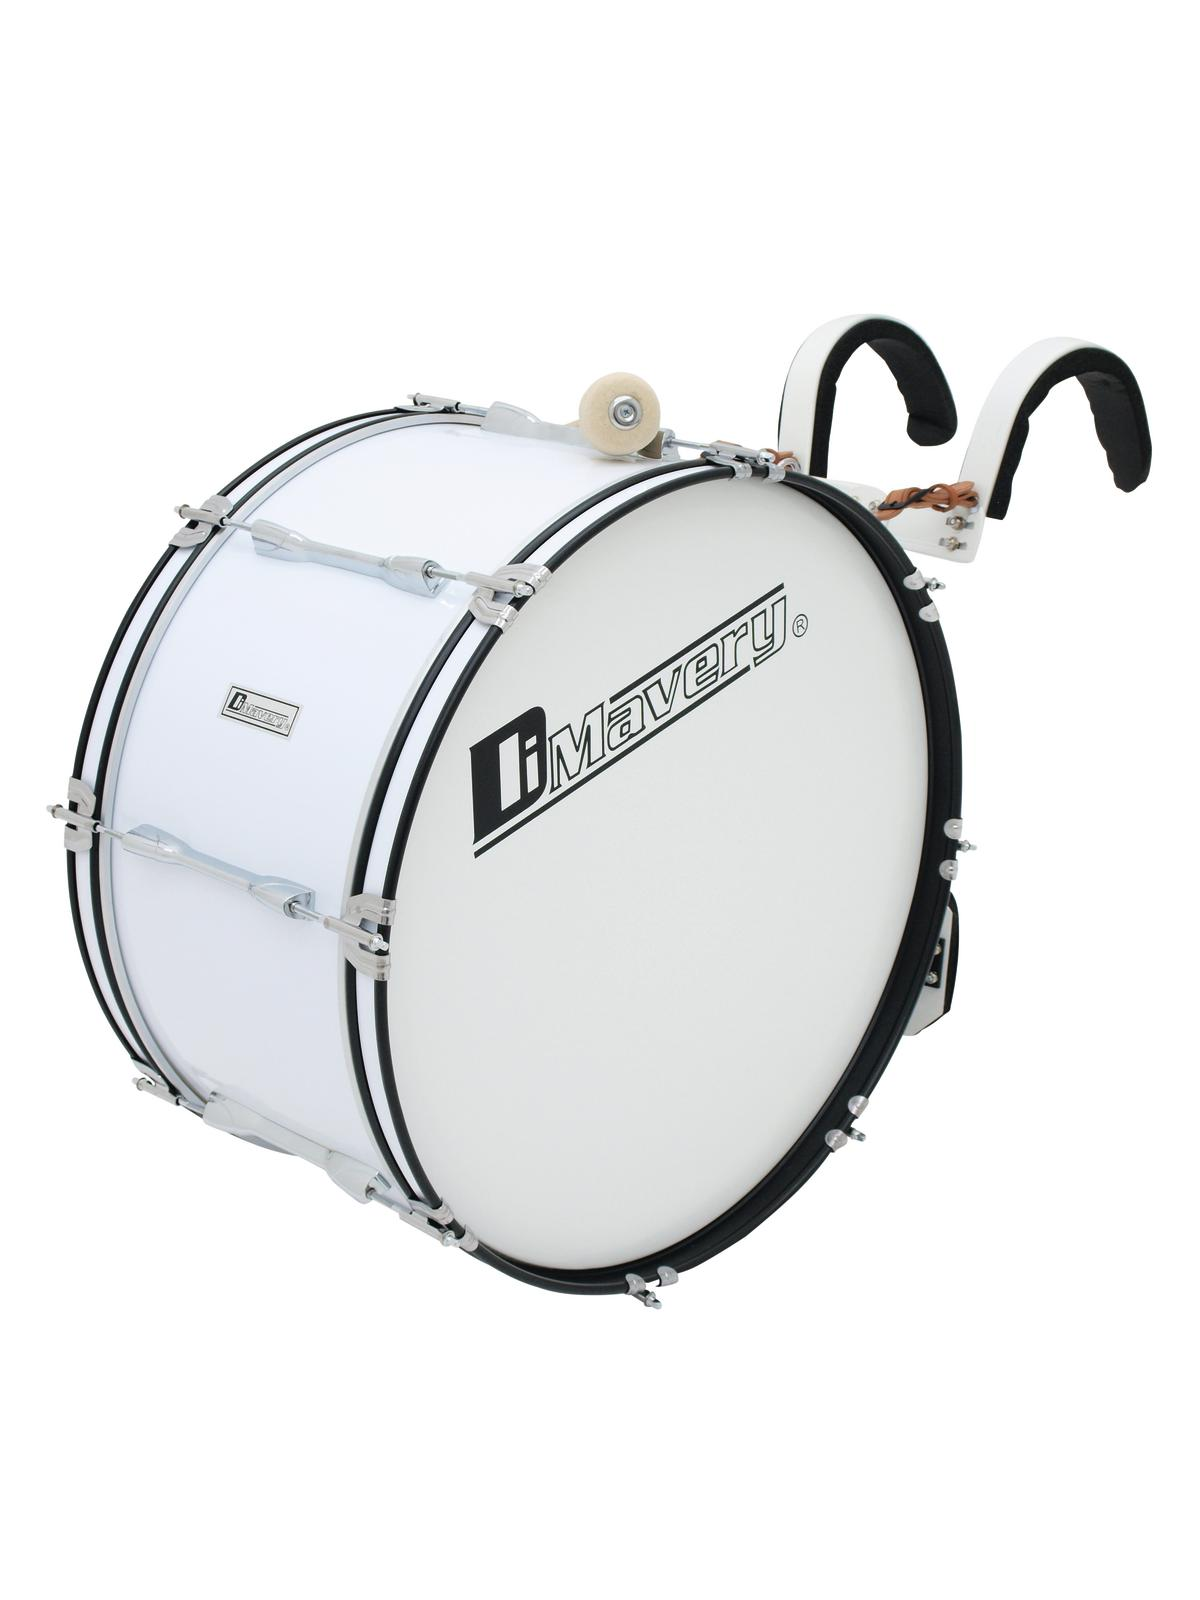 "DiMavery 24x12"" MB-424 March-stortromme"